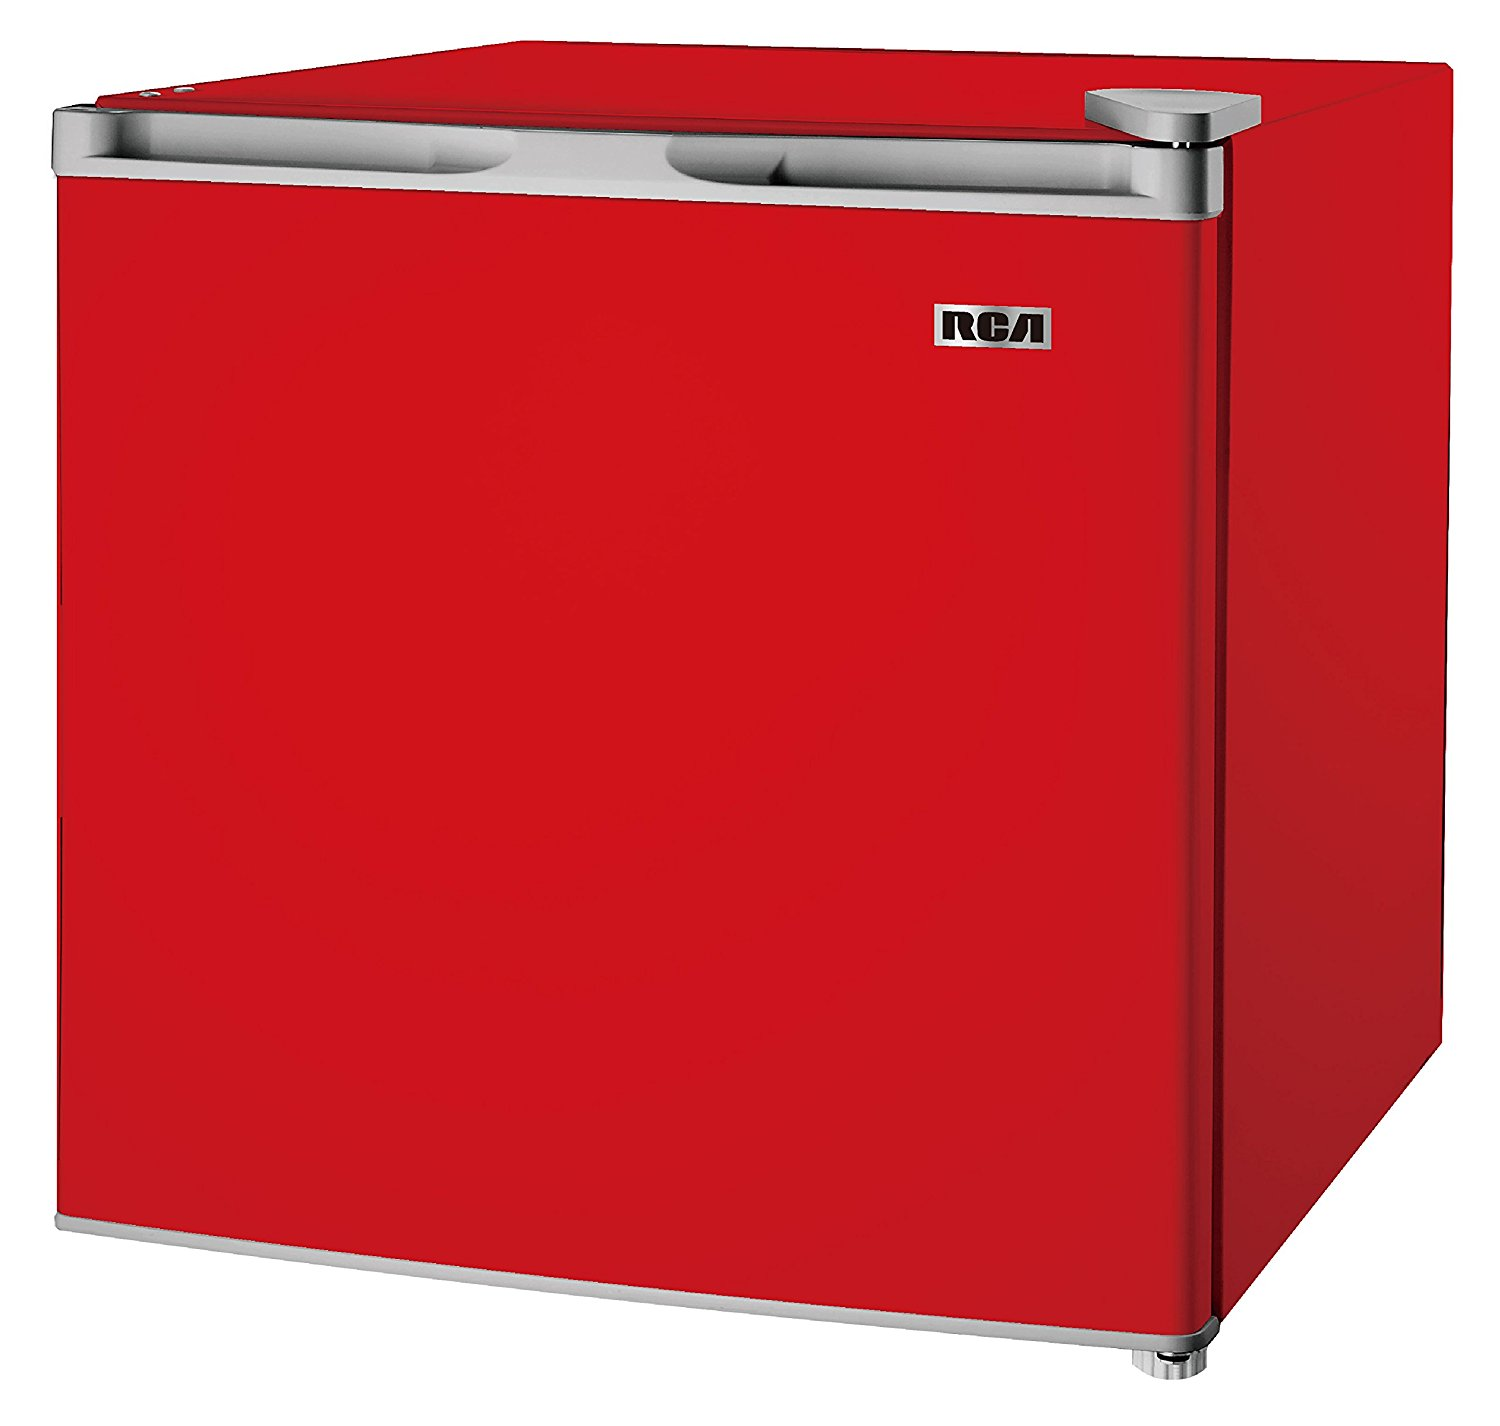 RCA 1.6-1.7 Cubic Foot Fridge, Red